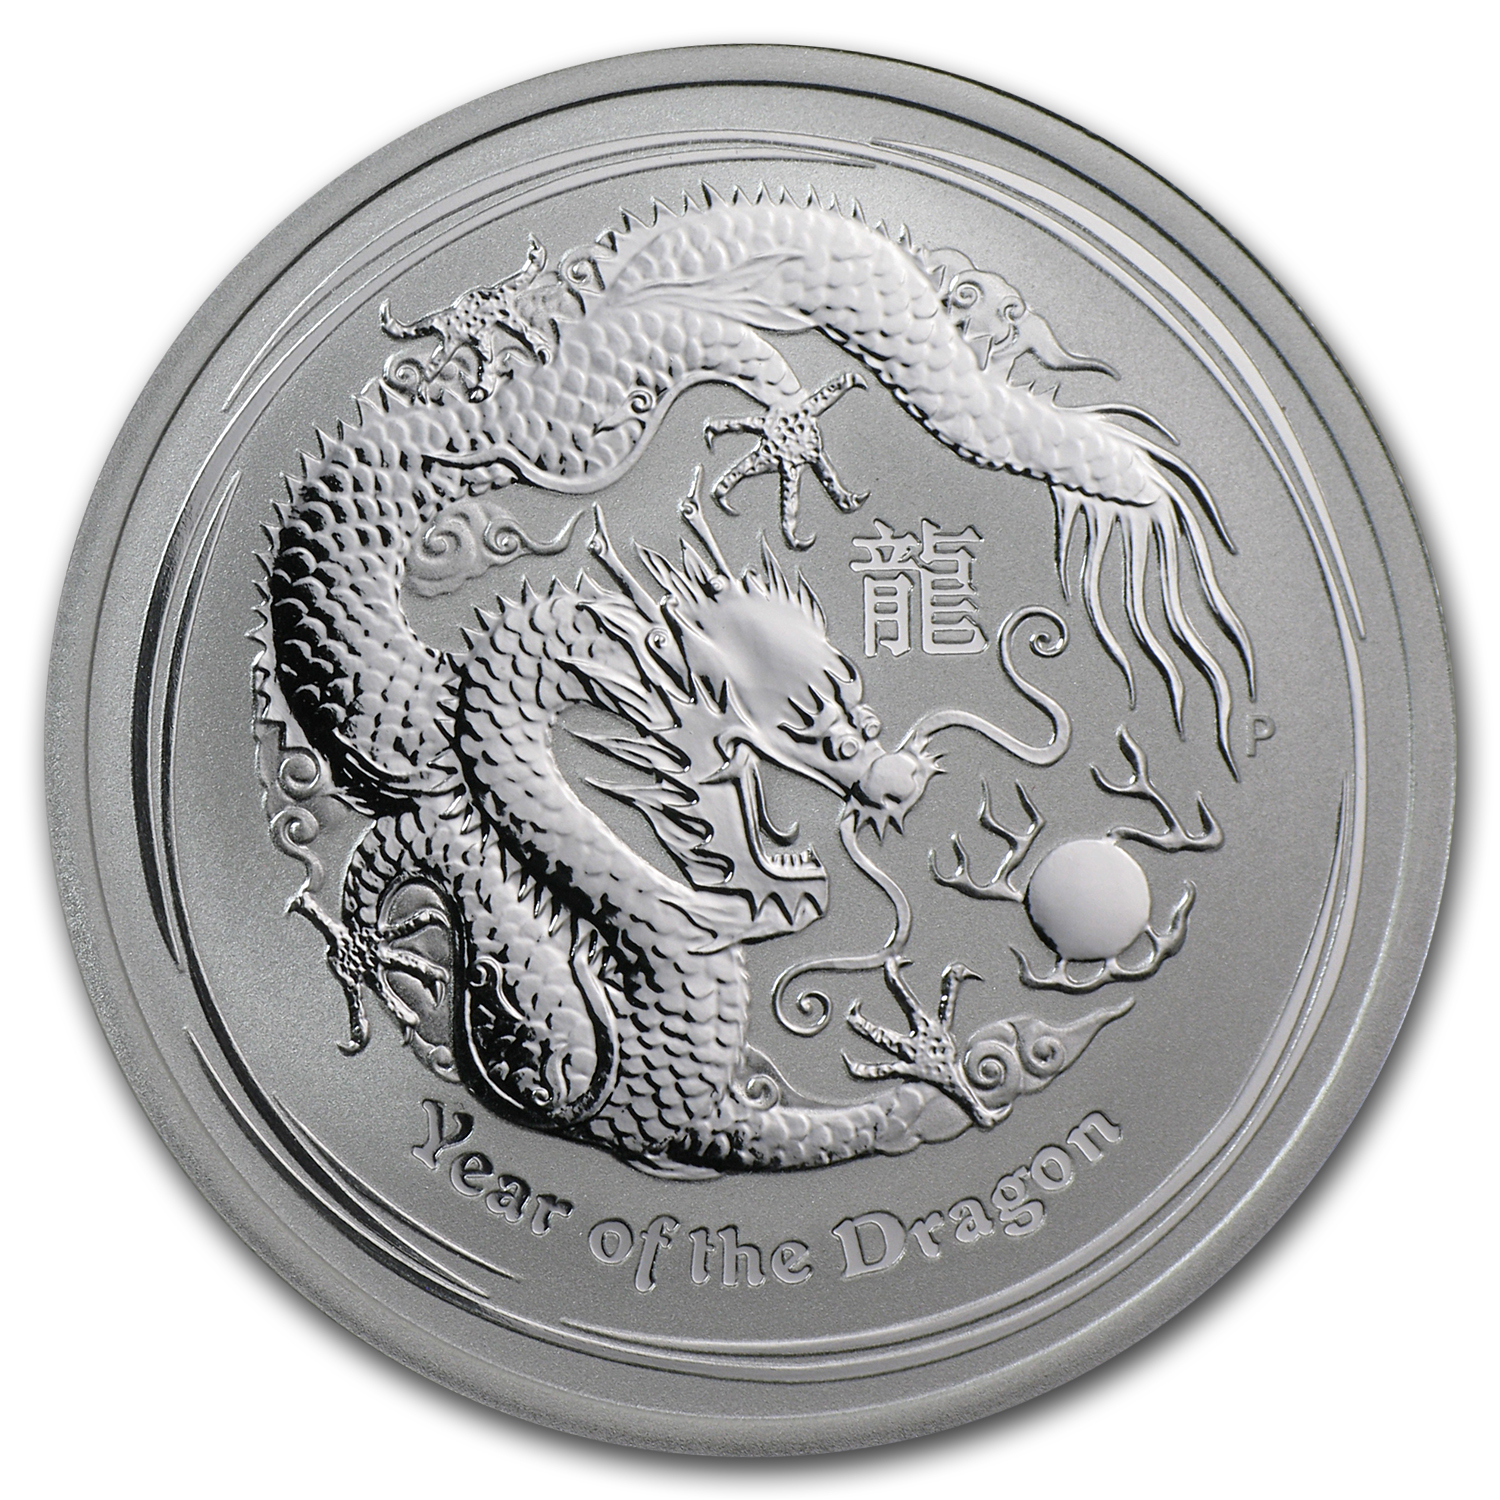 2012 Australia 1/2 oz Silver Year of the Dragon BU